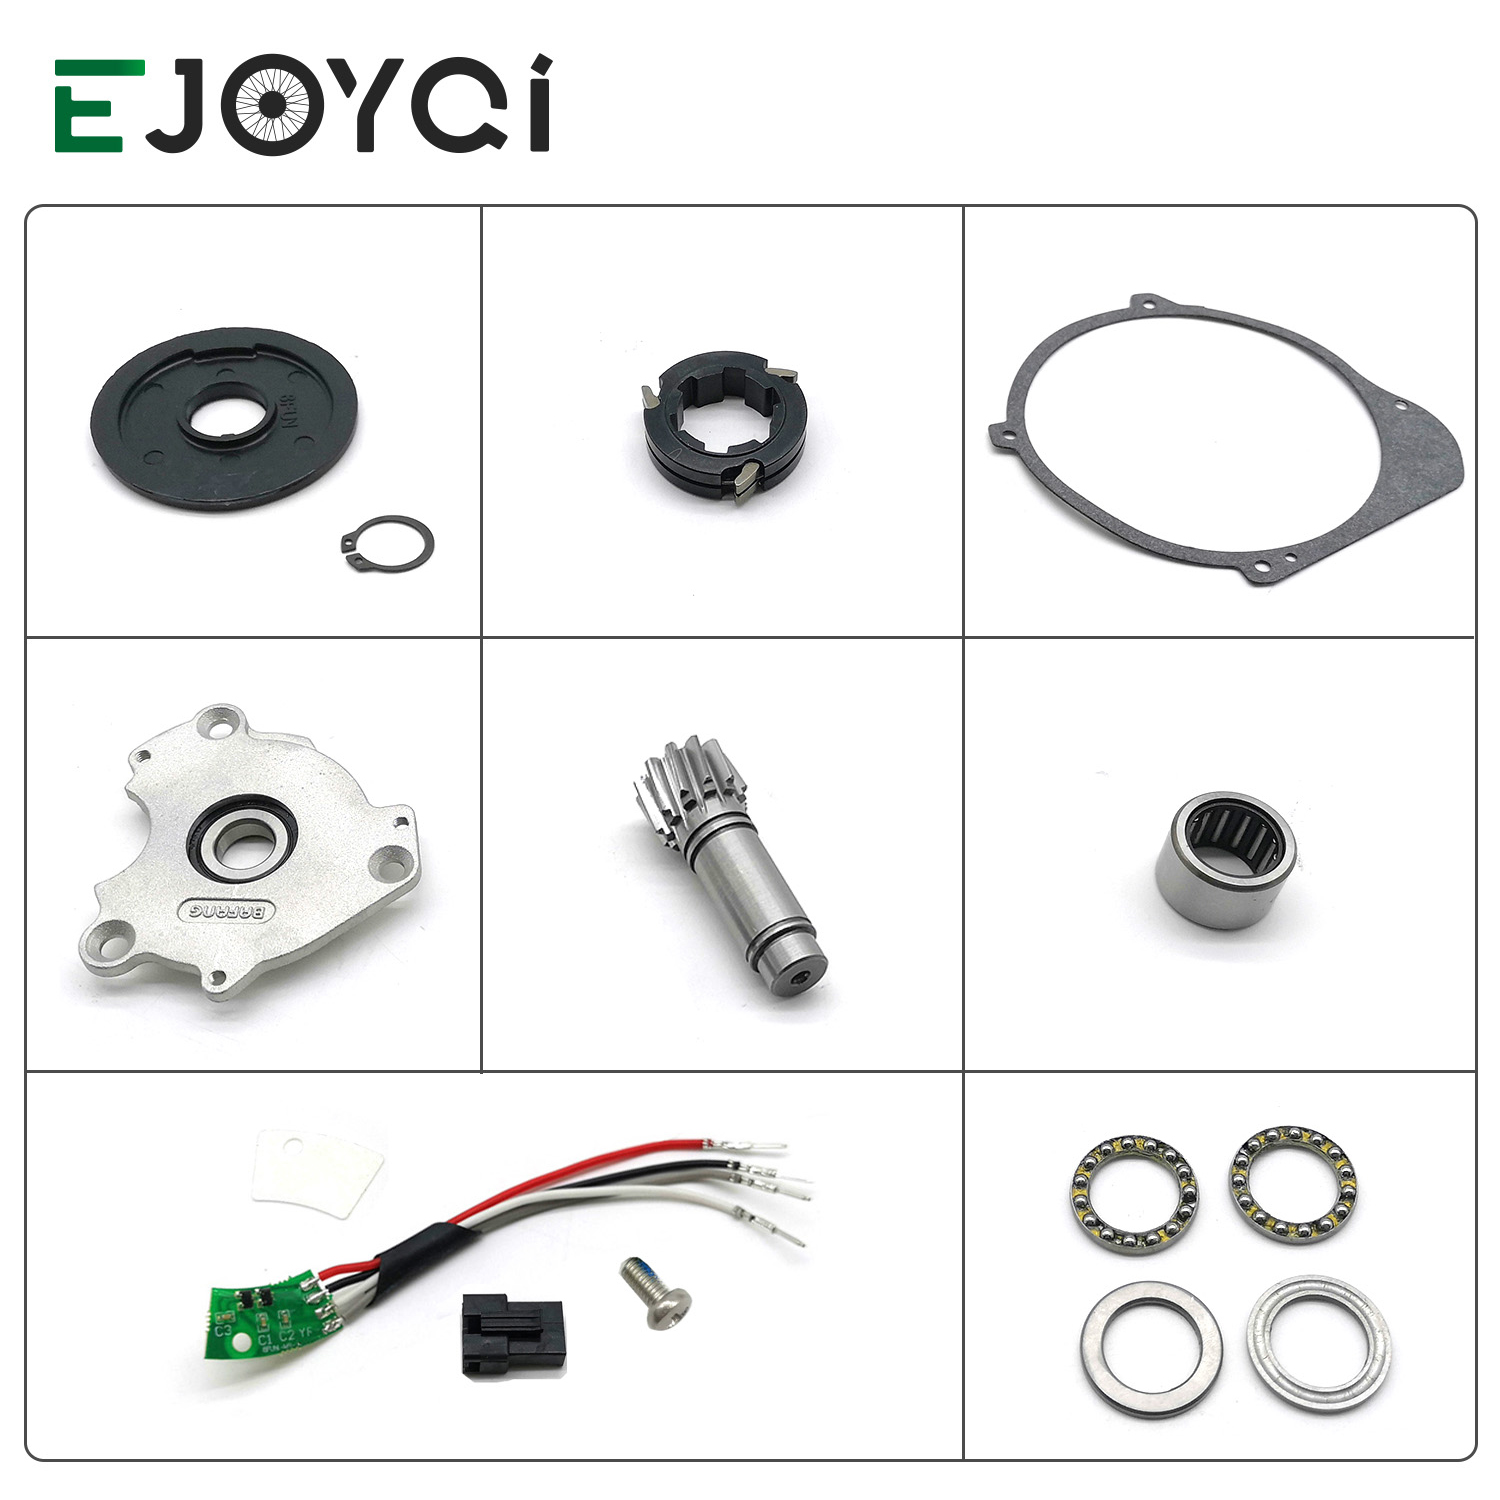 EJOYQI BBS01 BBS02 Bafang Mid Motor Accessories Electric Bicycle Assembling Components Bike Installation Parts Bearing